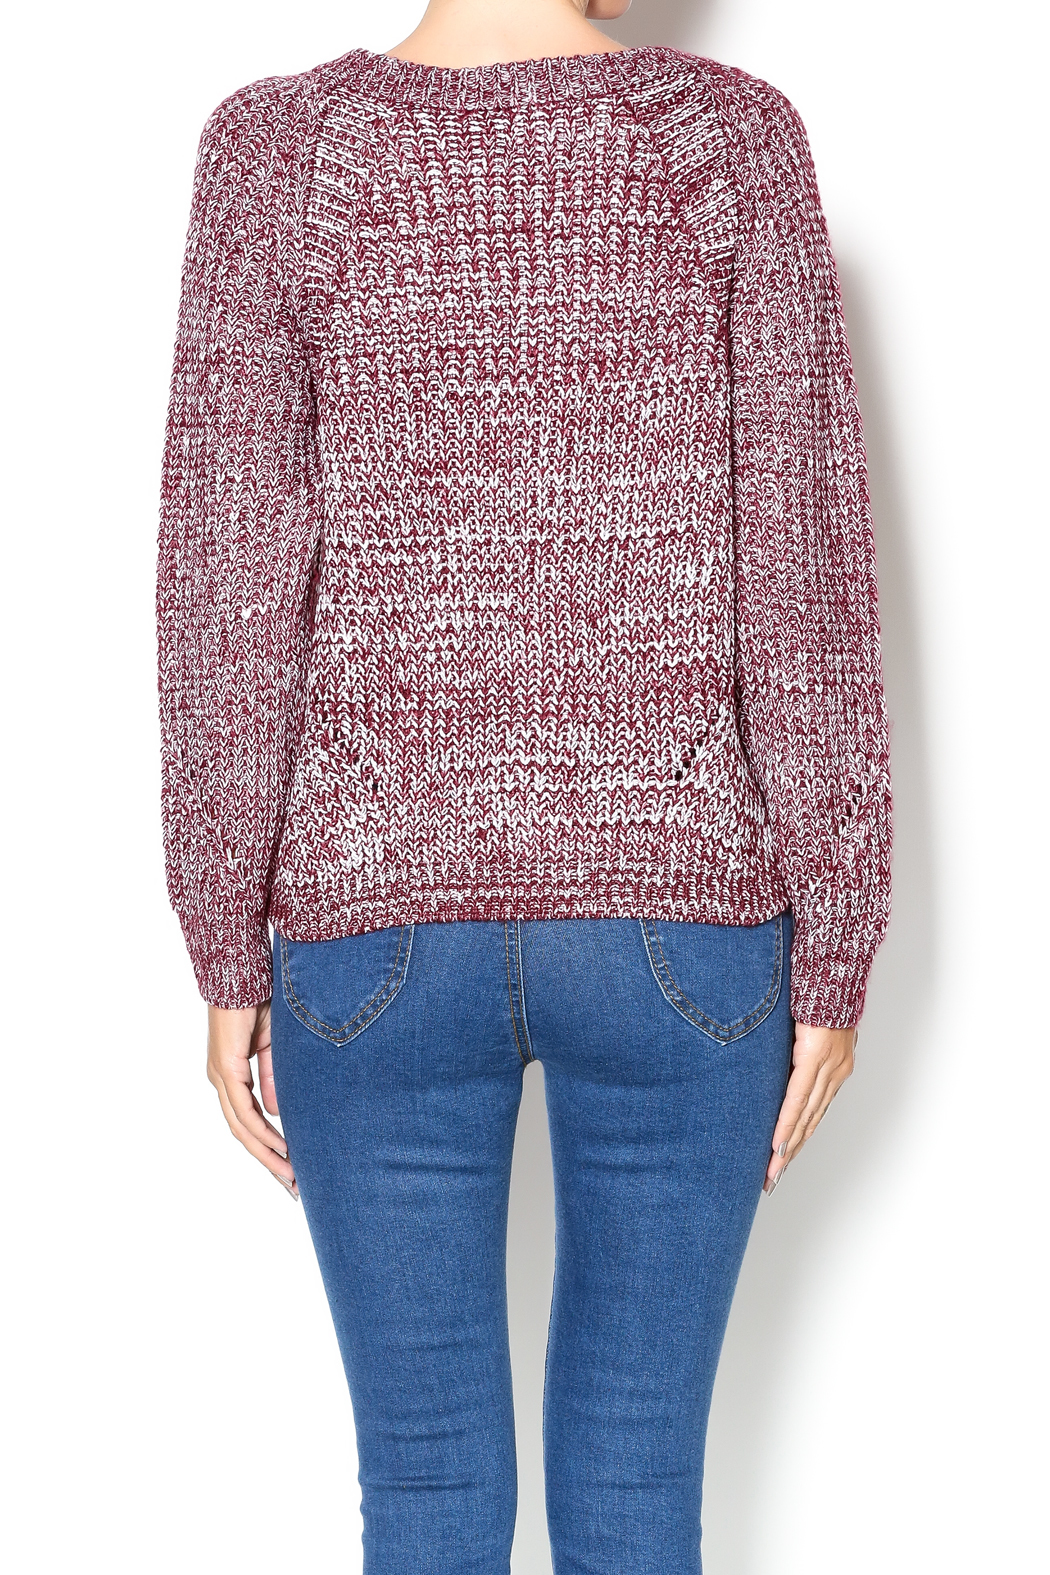 NU New York Red Marled Sweater from Union Square — Shoptiques